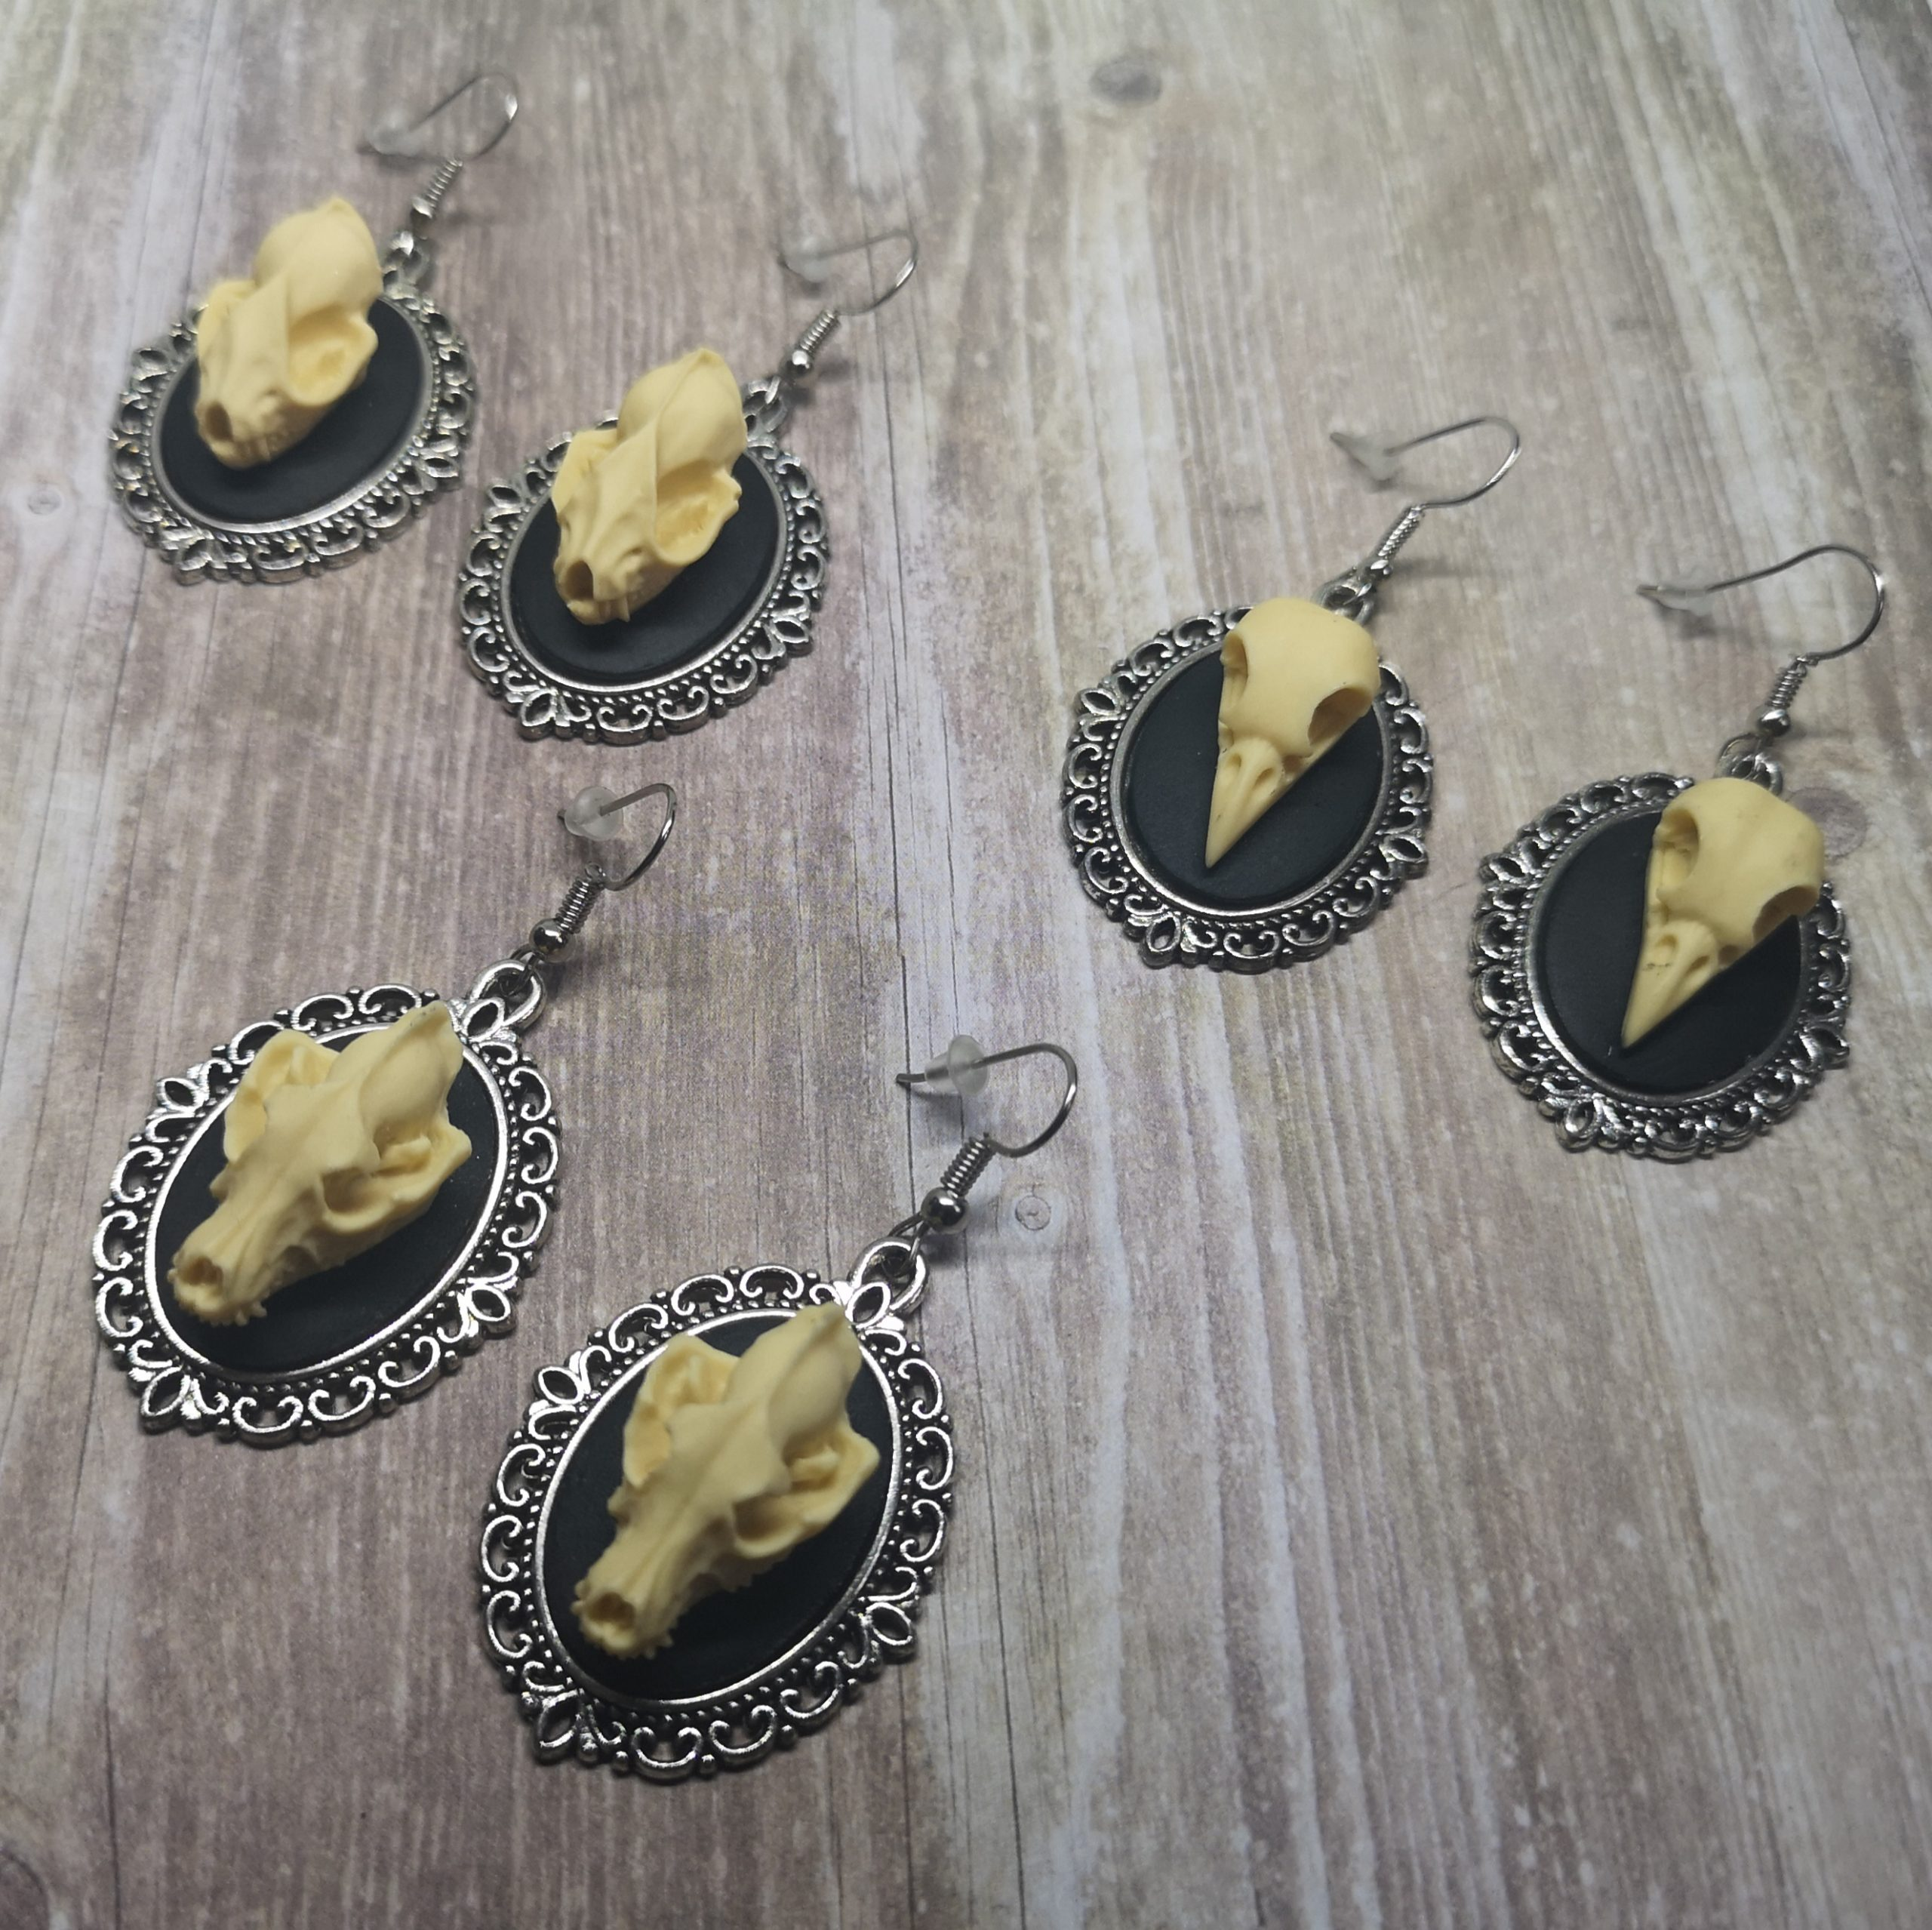 Ayame Designs handcrafted skull cameo earrings